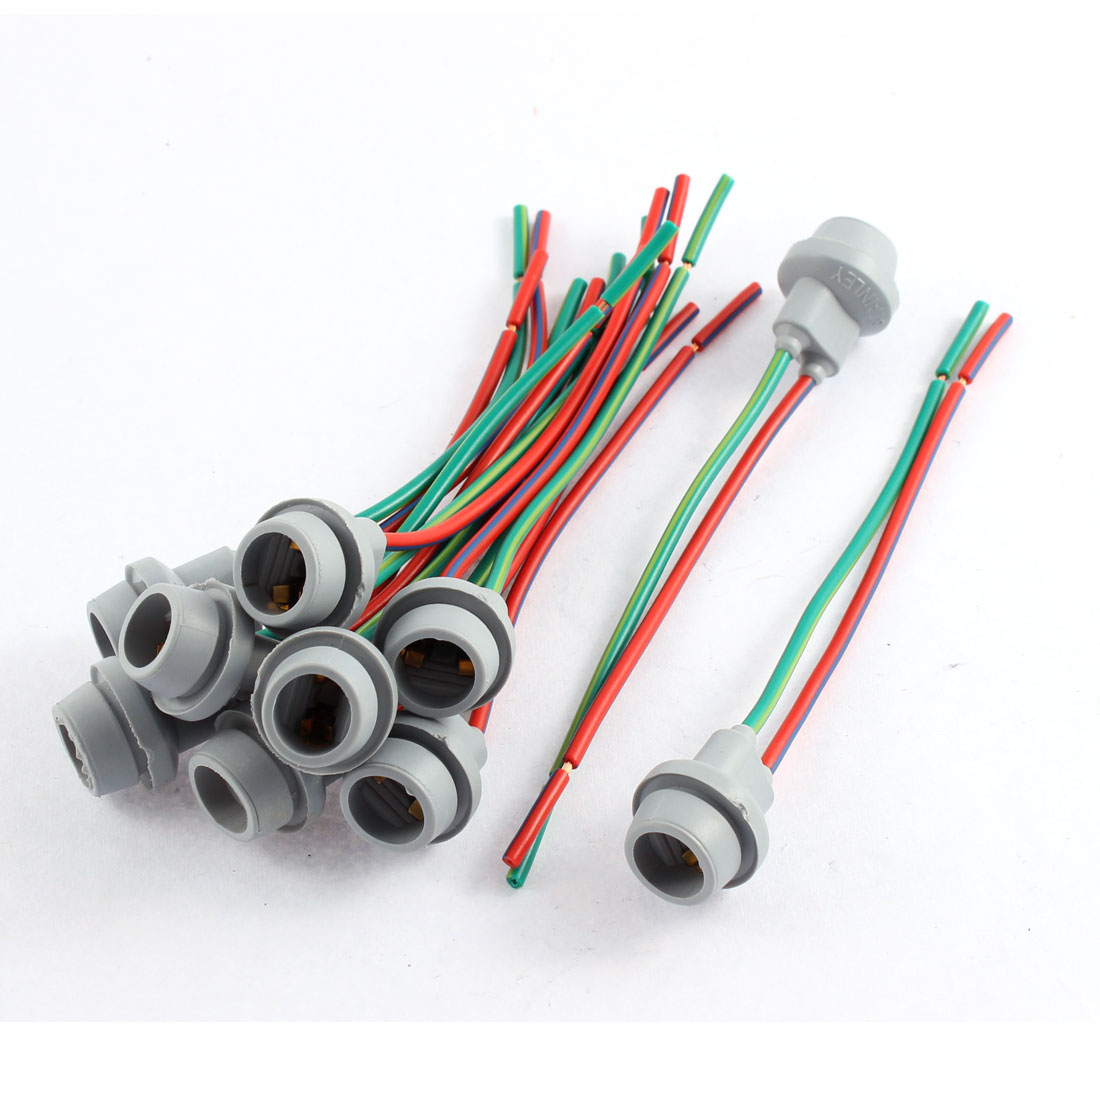 Uxcell Car DC 12V W5W <font><b>T10</b></font> 194 168 Light <font><b>Socket</b></font> Lamp Holder Wire Harness Connector 10Pcs image